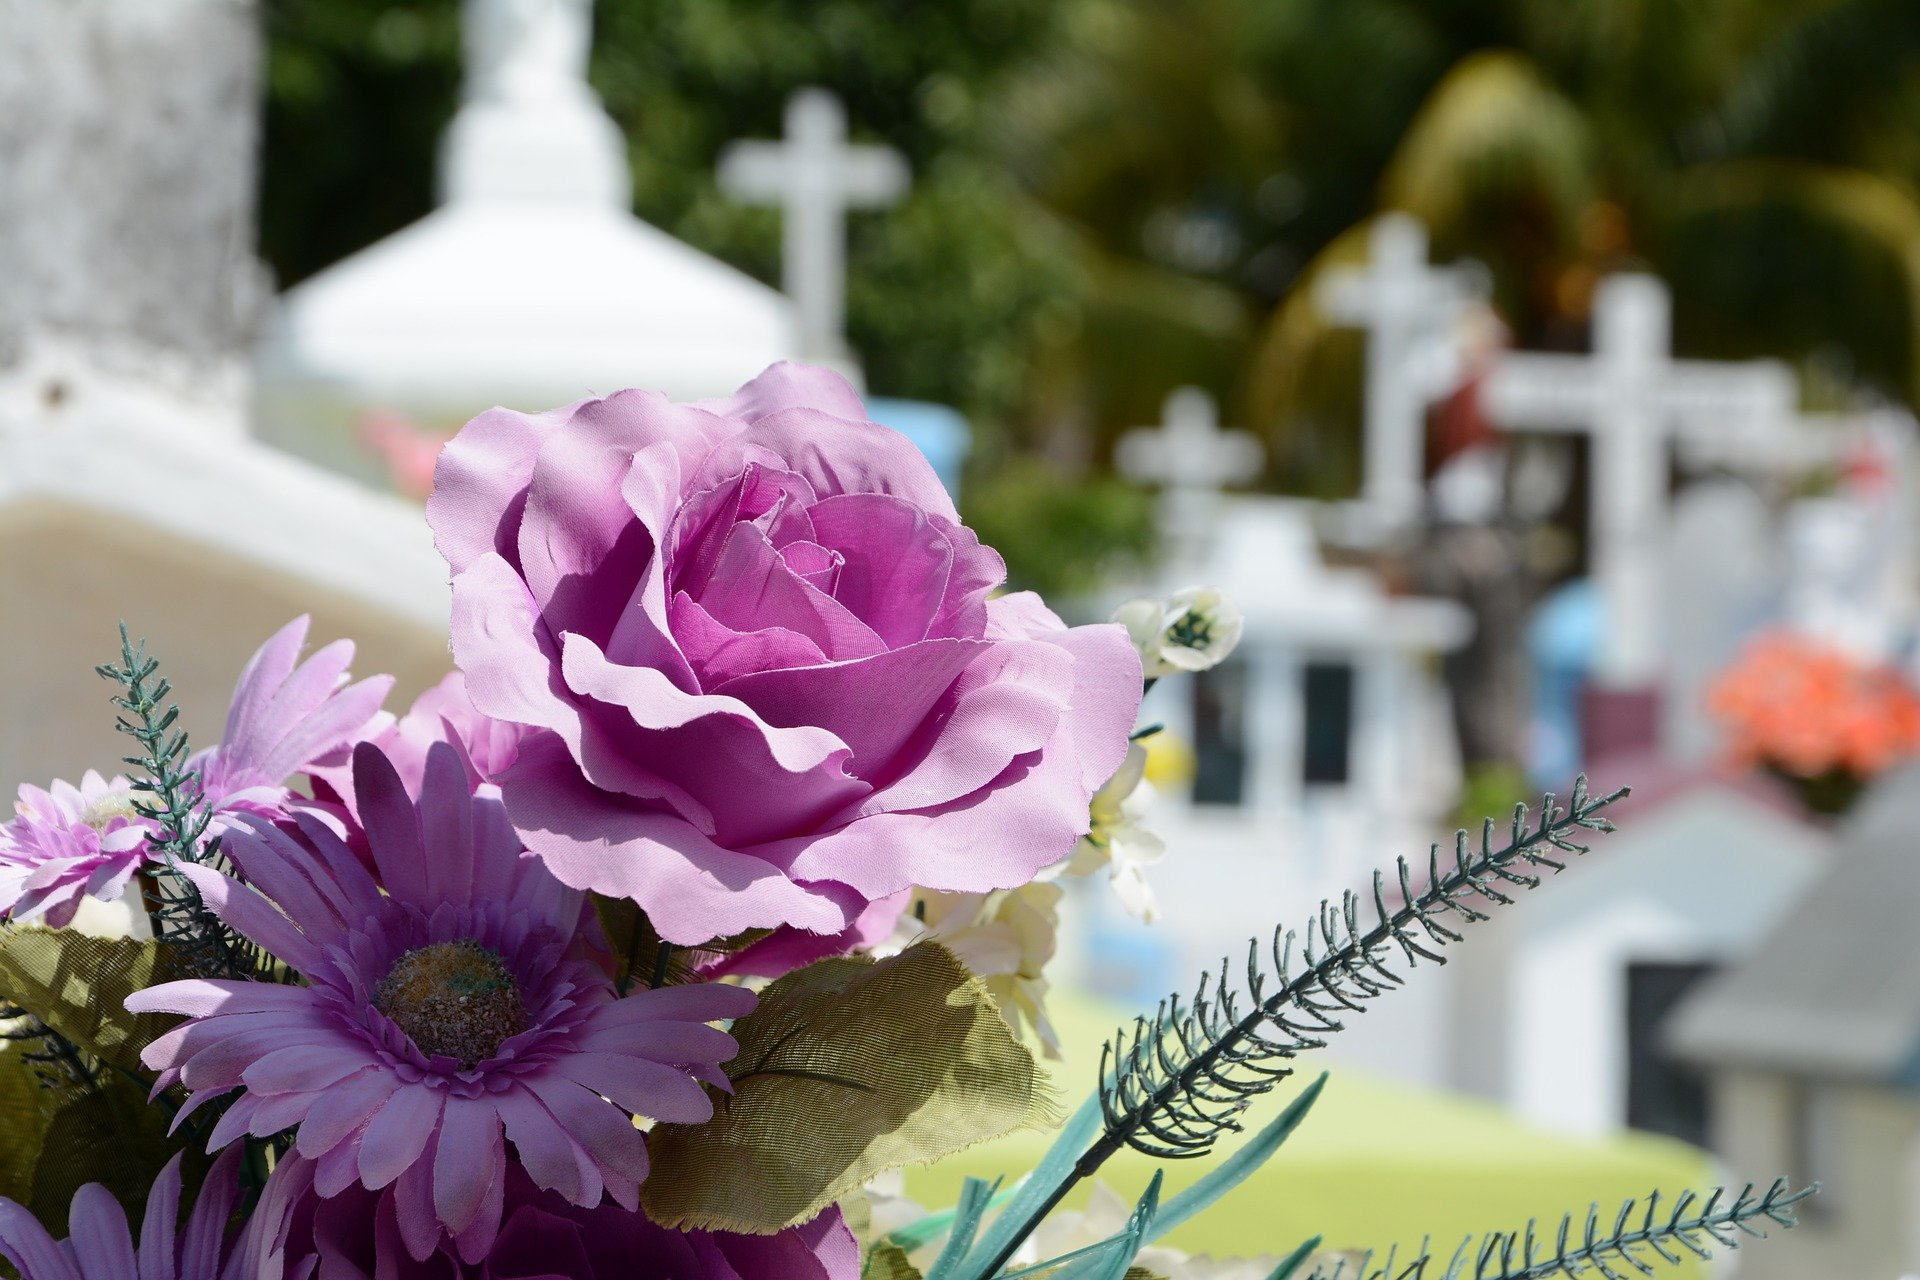 Photo of a beautiful flower at a graveyard. | Photo: Getty Images